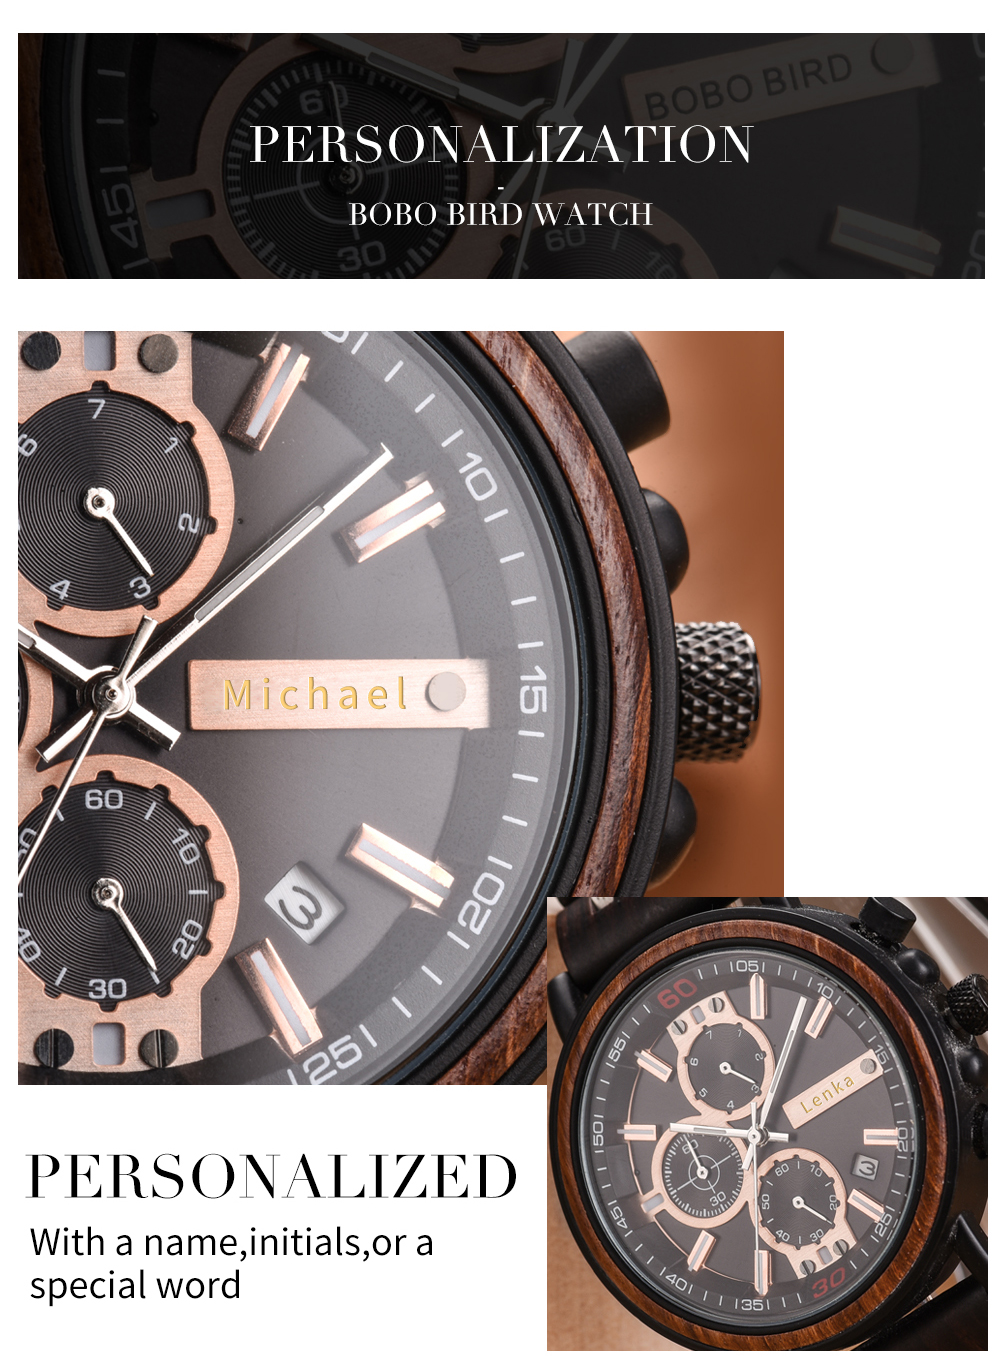 BOBO BIRD Personalized Wooden Watch Men Relogio Masculino Top Brand Luxury Chronograph Military Watches Anniversary Gift for Him Hec8c4983a16345f088124835dd5b3f5eY